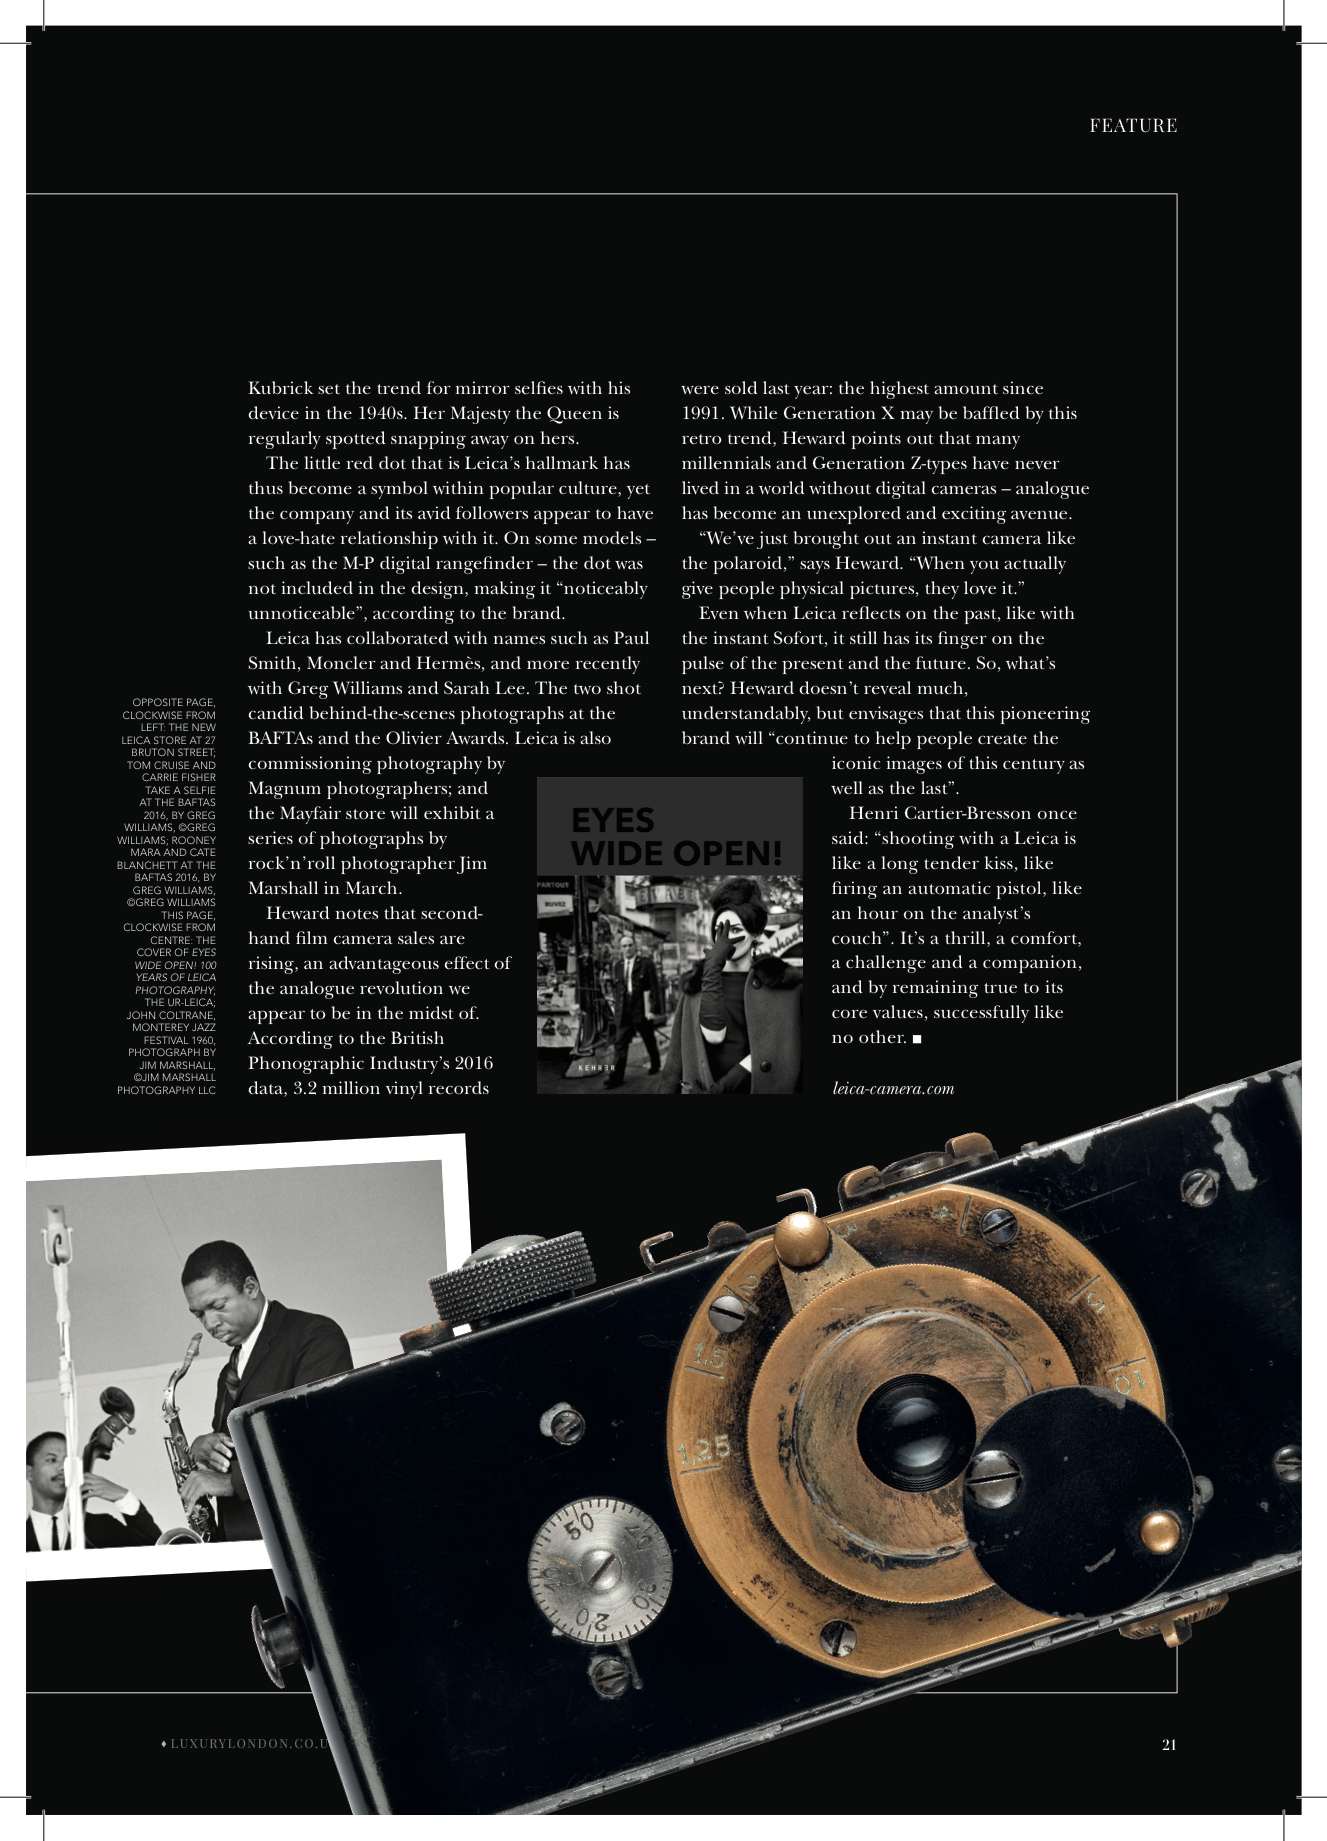 021 MAYF FEB 17 FEATURE - 100 YEARS OF LEICA.jpg